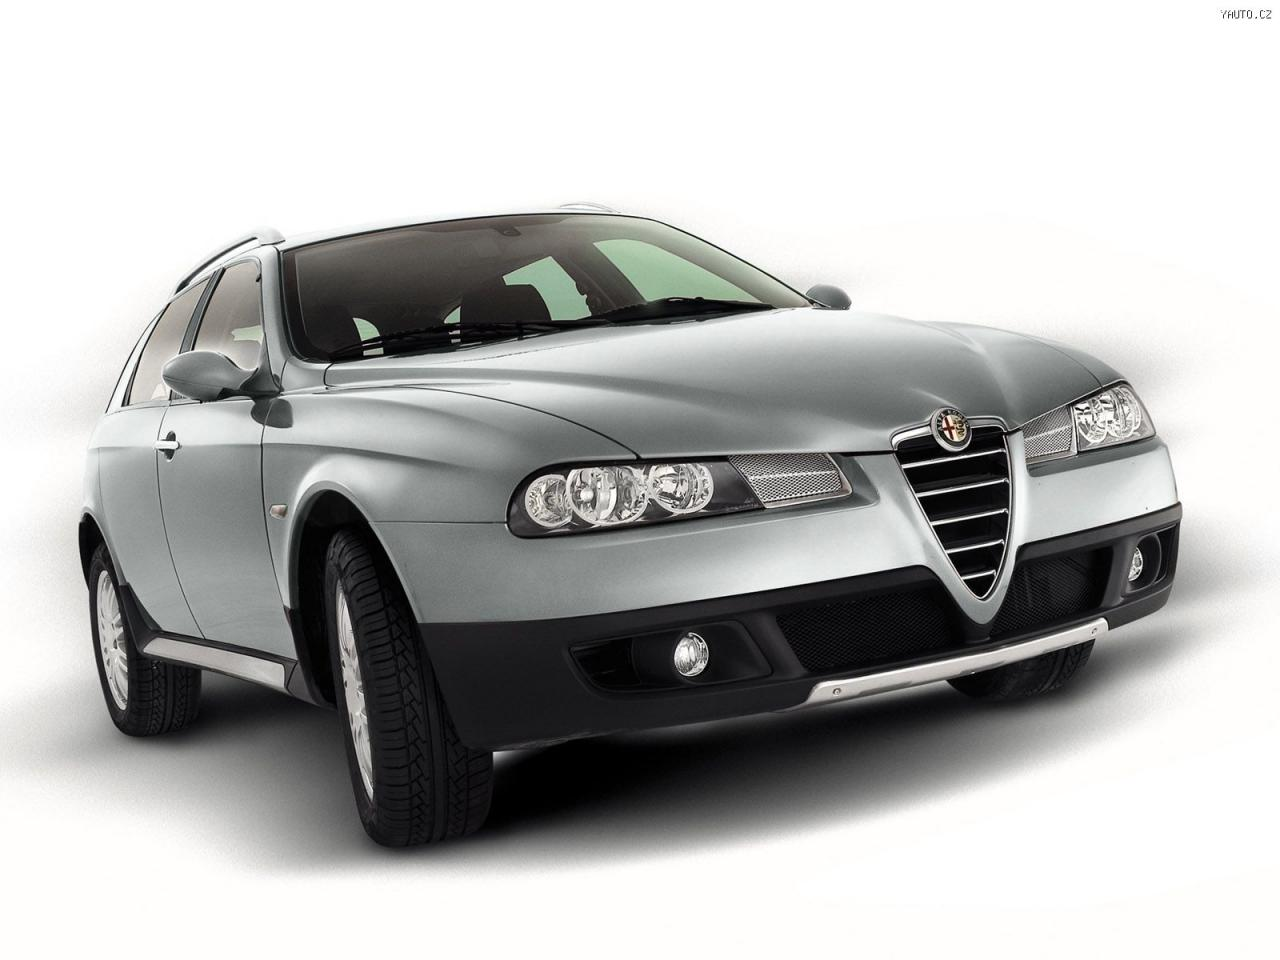 2019 Alfa Romeo 156 Crosswagon Q4 photo - 5